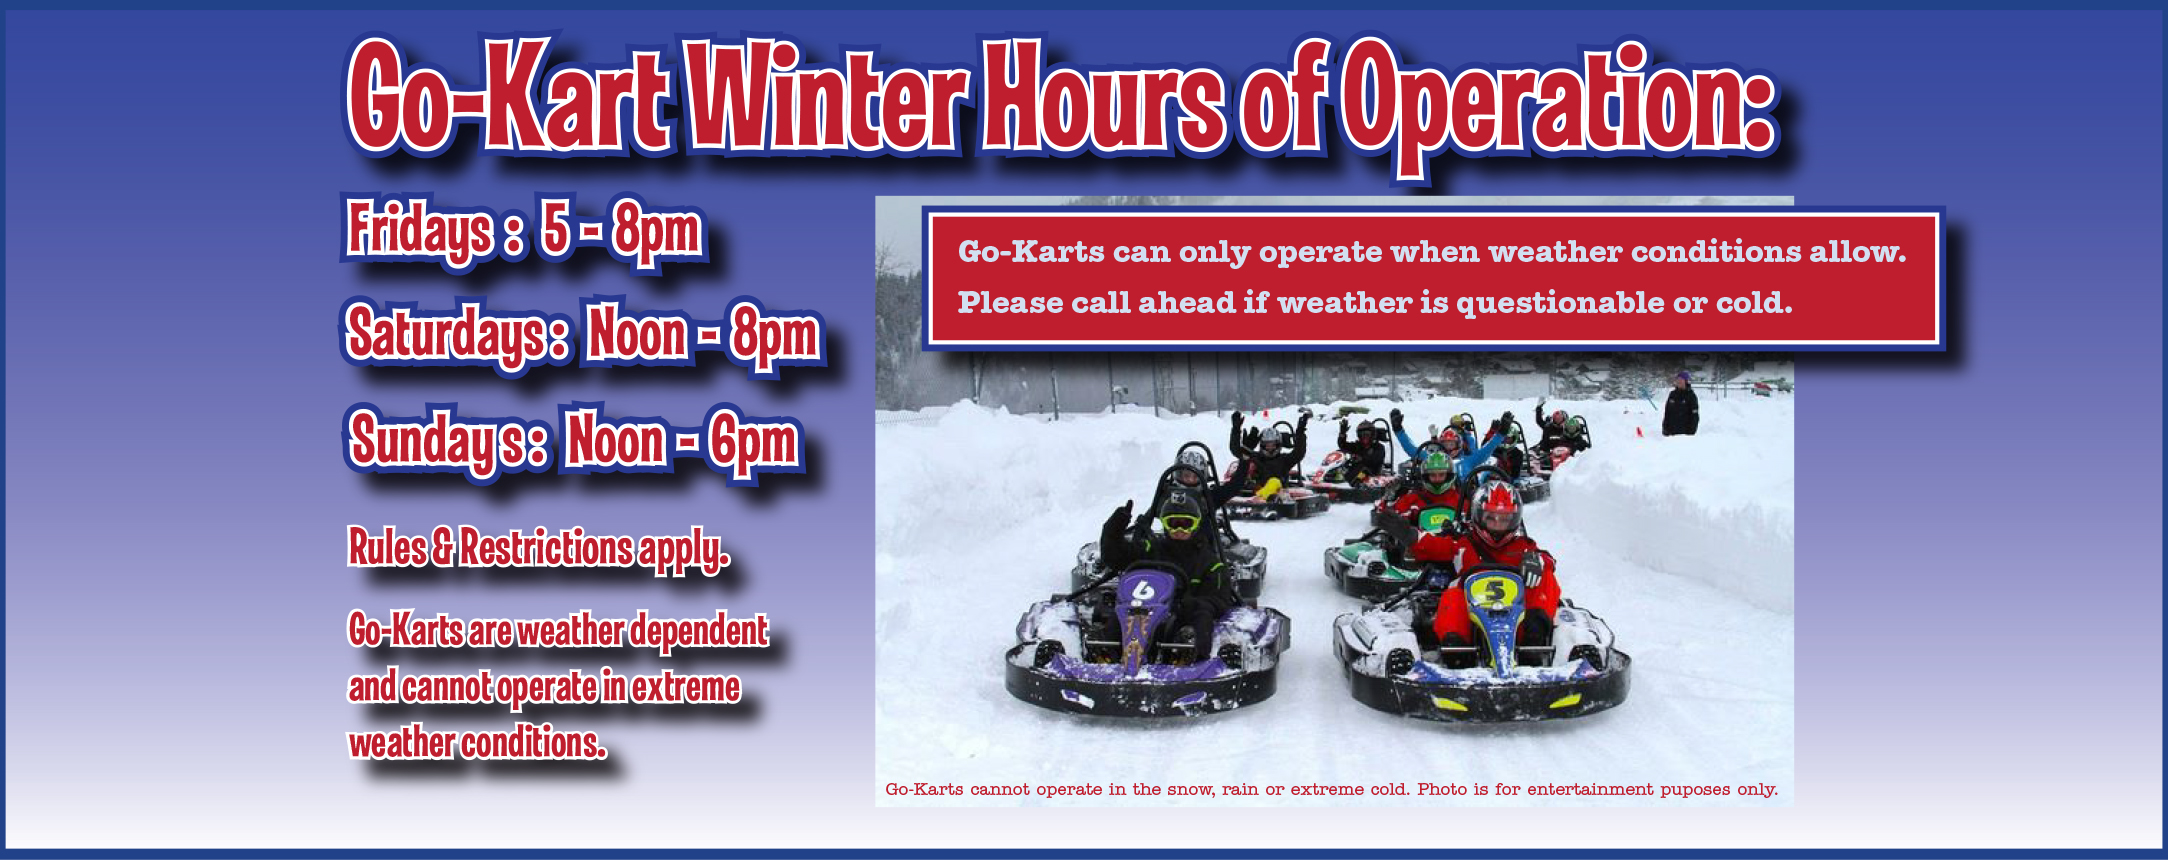 Call ahead if weather is questionable or cold.